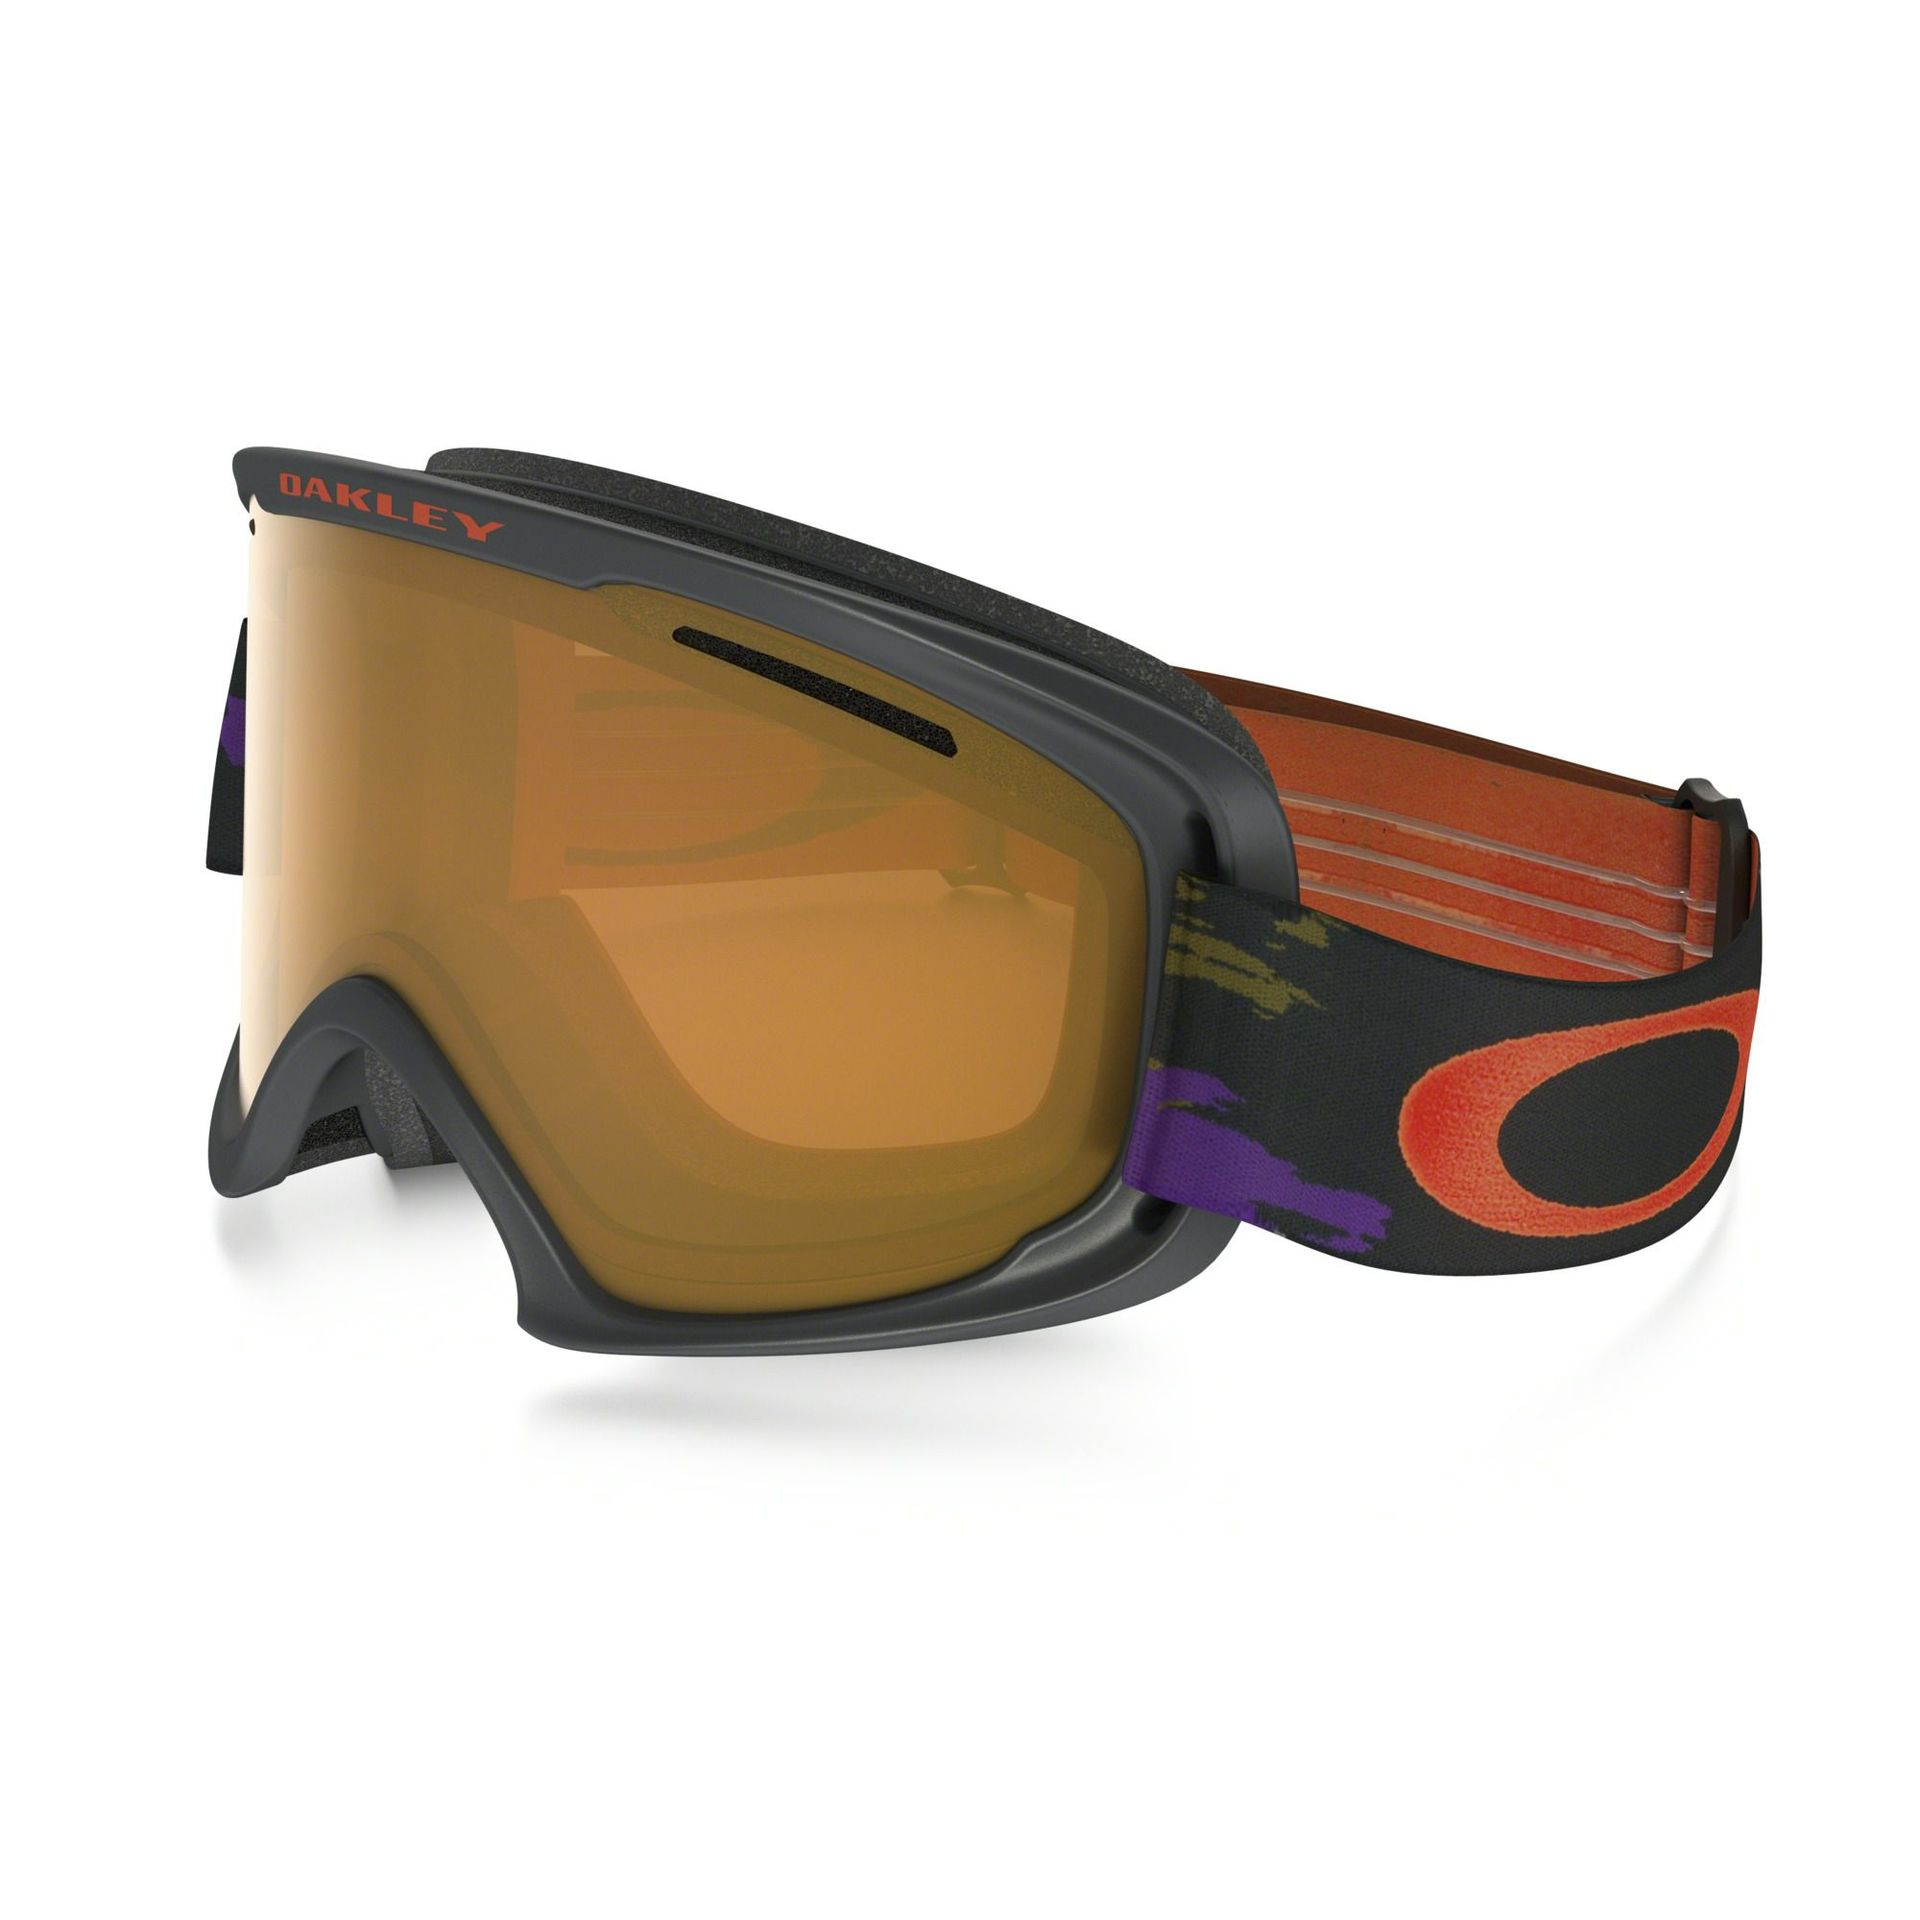 GOGLE OAKLEY O2 XL DISTRESSED PAINT PURPLE IRON PERSIMMON